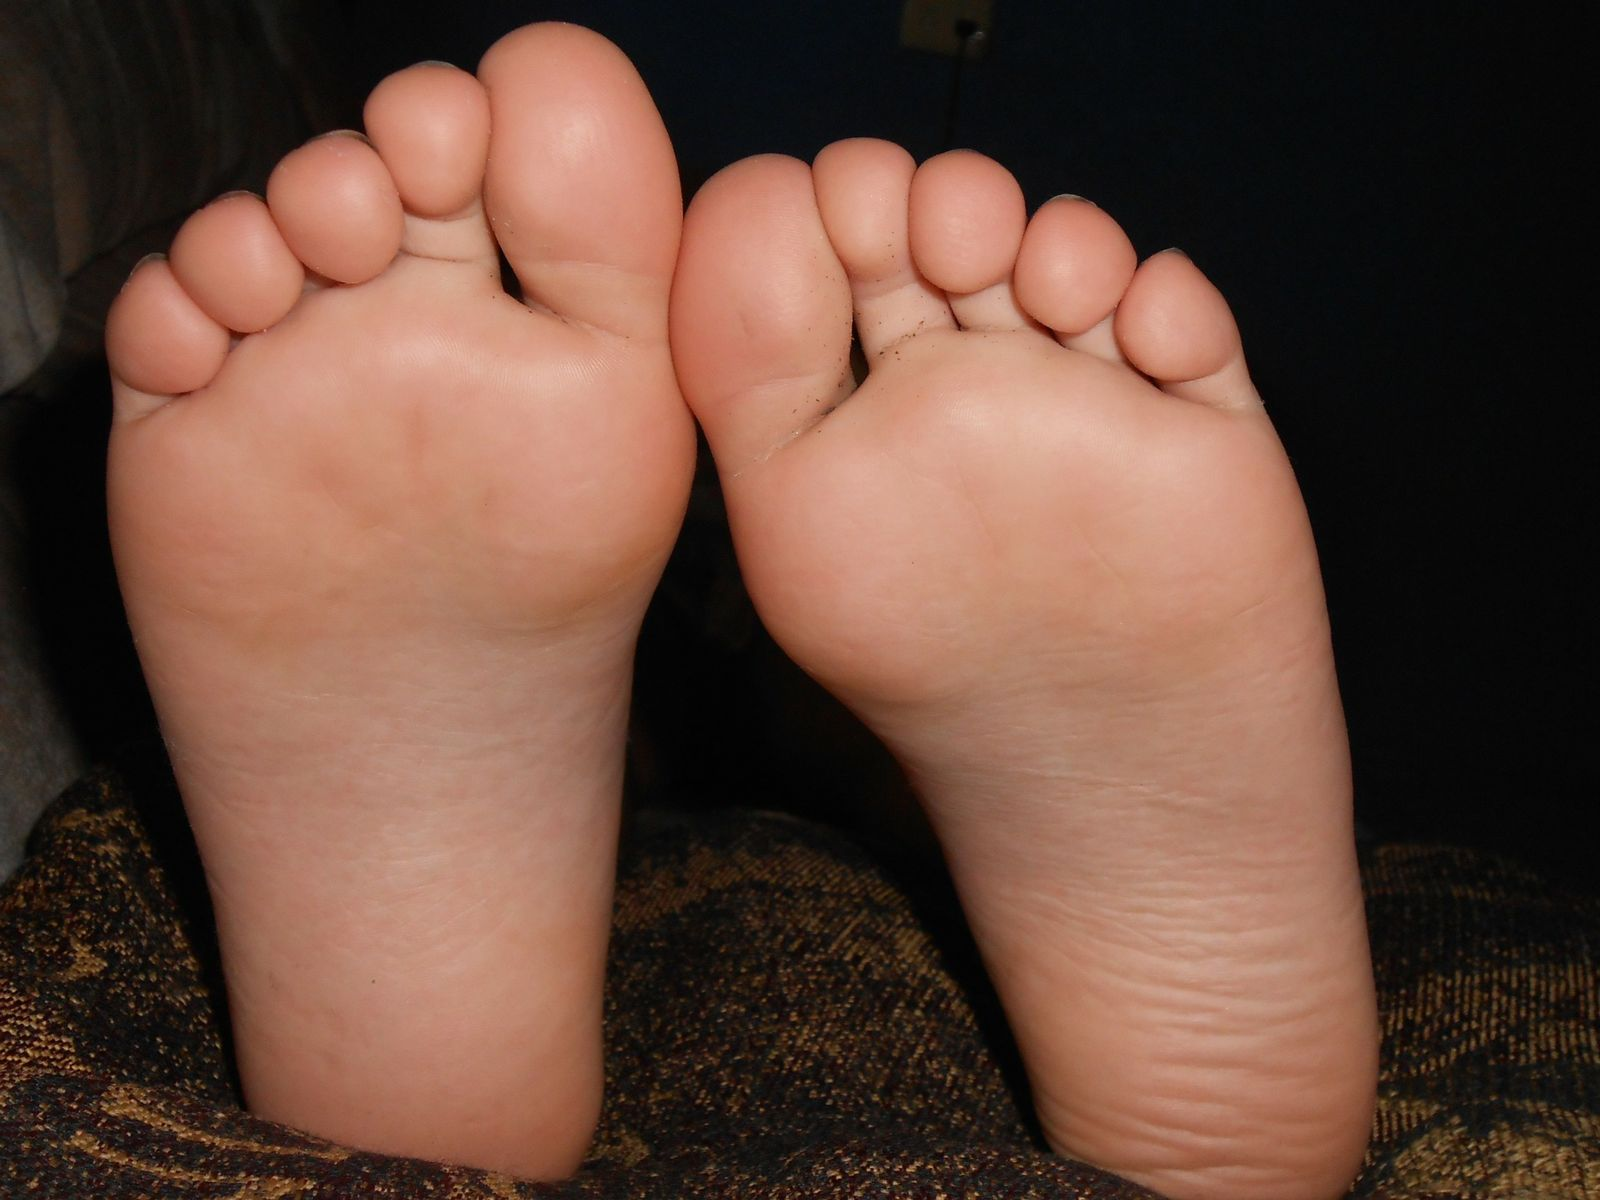 Baby's feet do best when left barefoot to explore the sensation of standing and walking